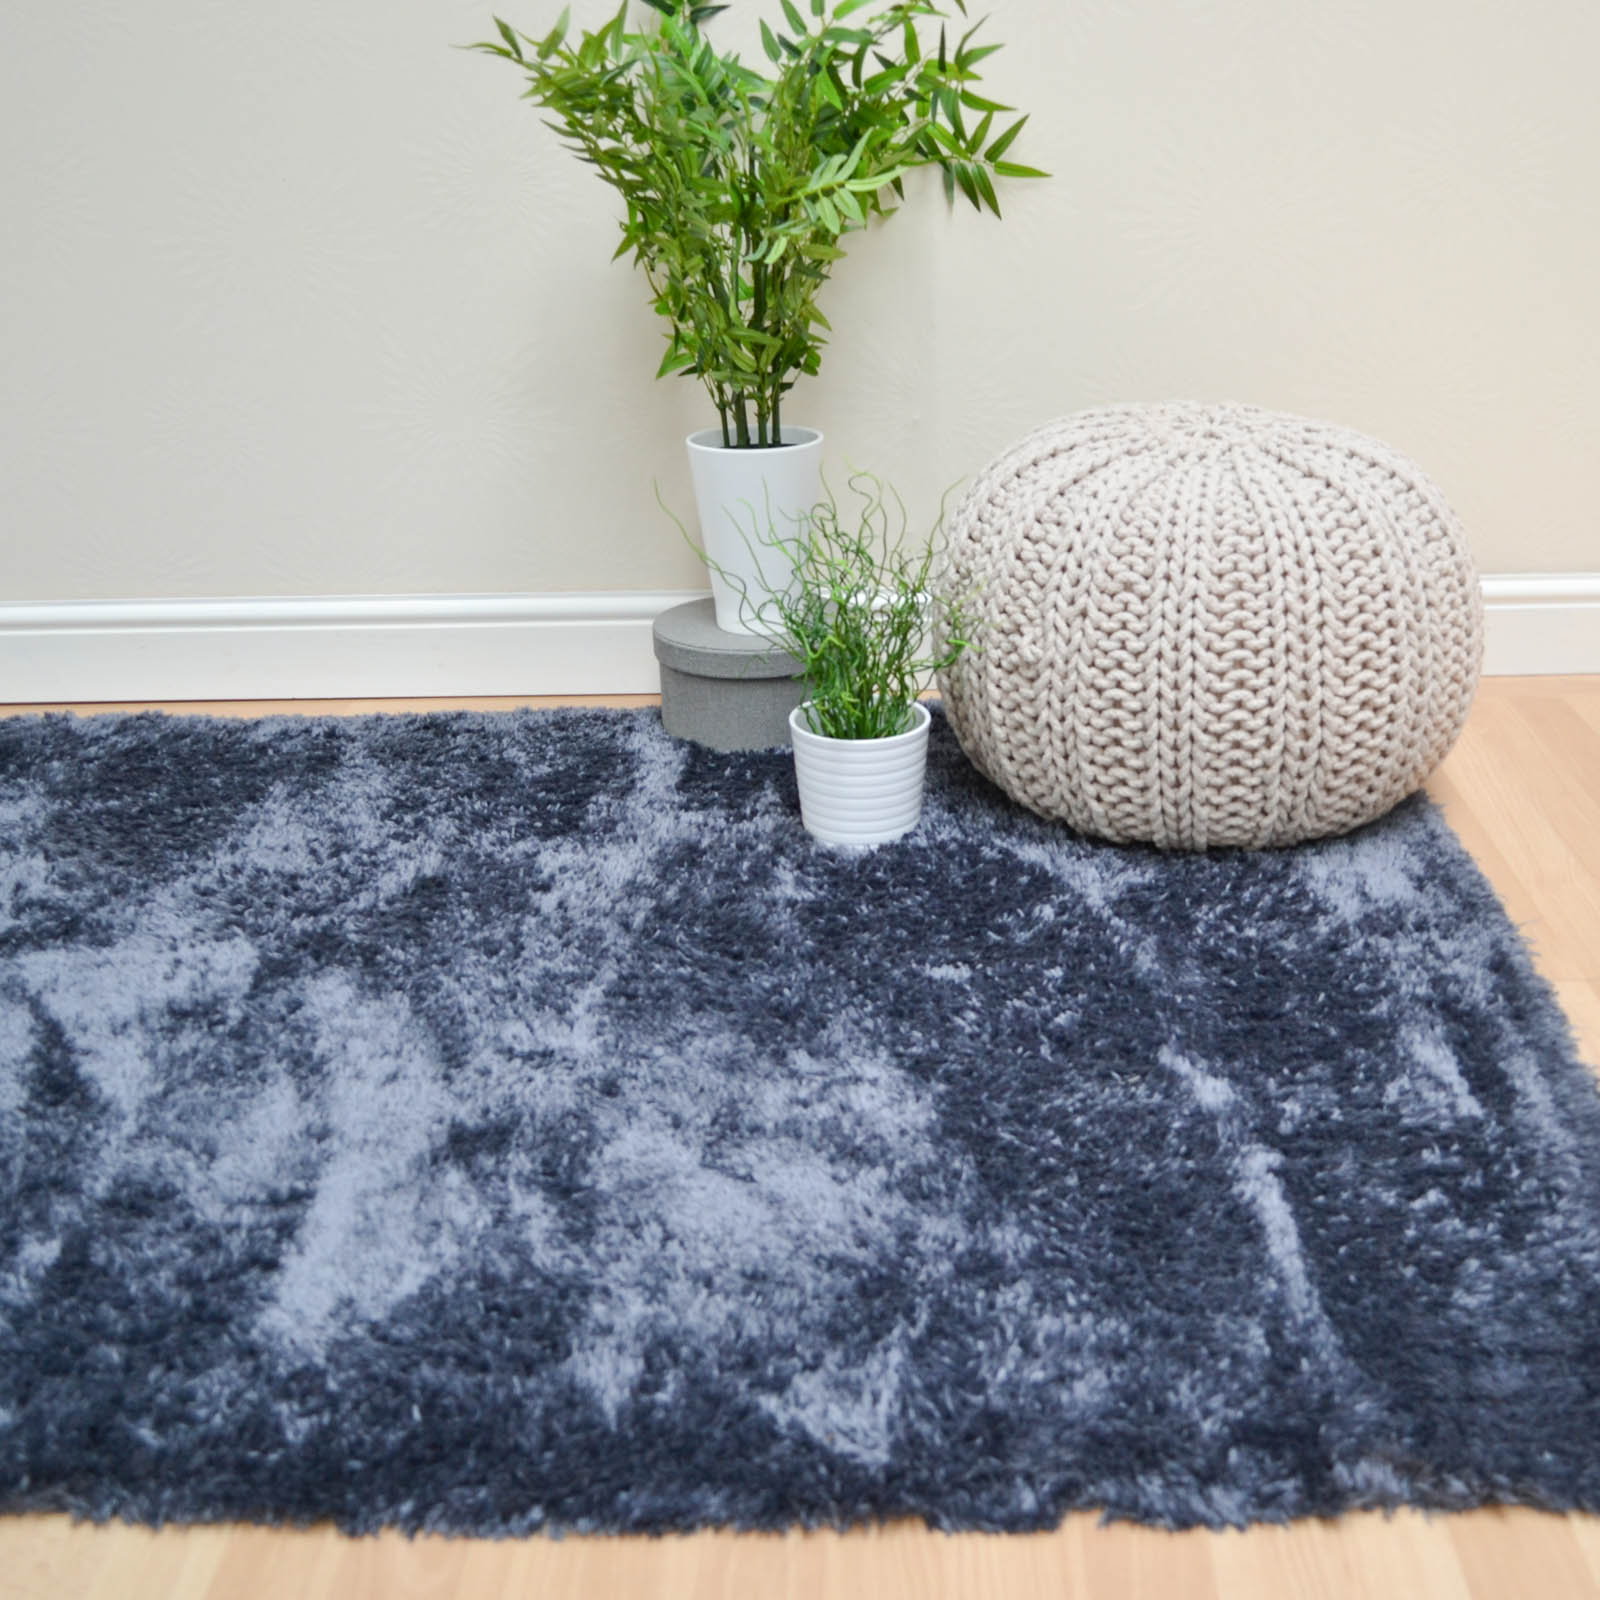 Plantation Marshmallow Rugs MAR03 in Charcoal Grey